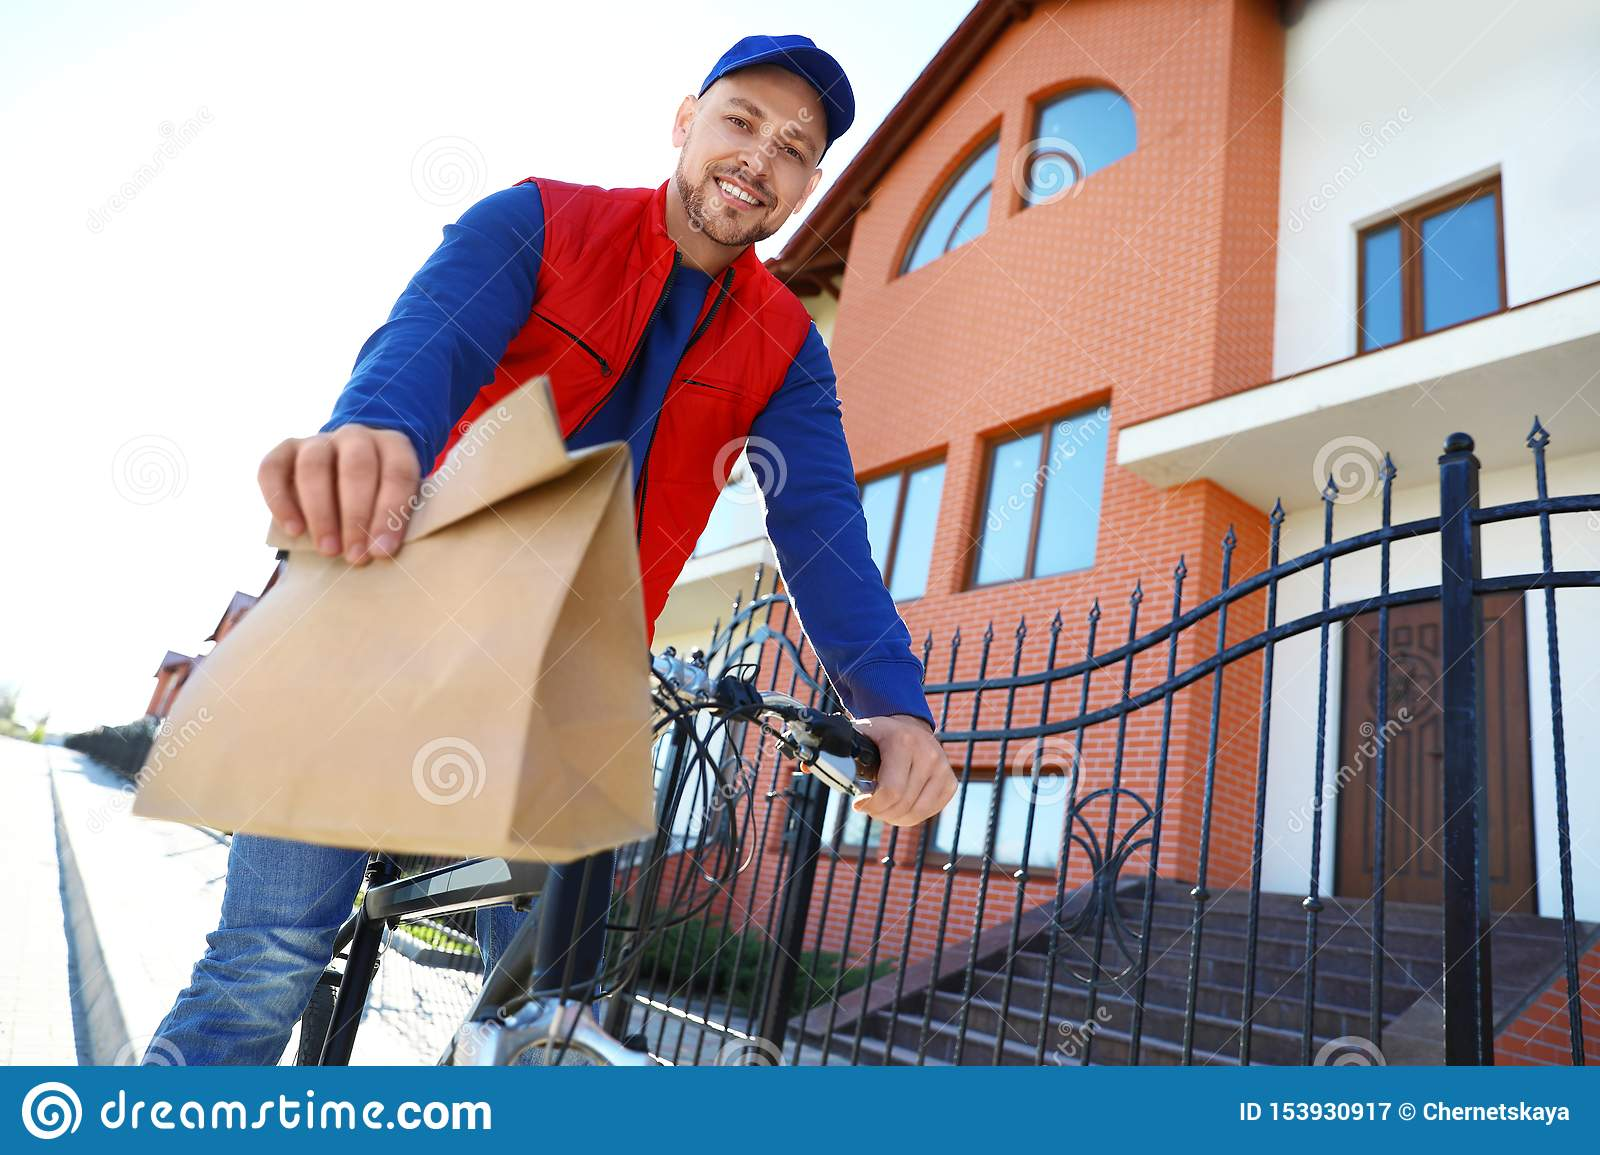 Male courier on bicycle delivering food